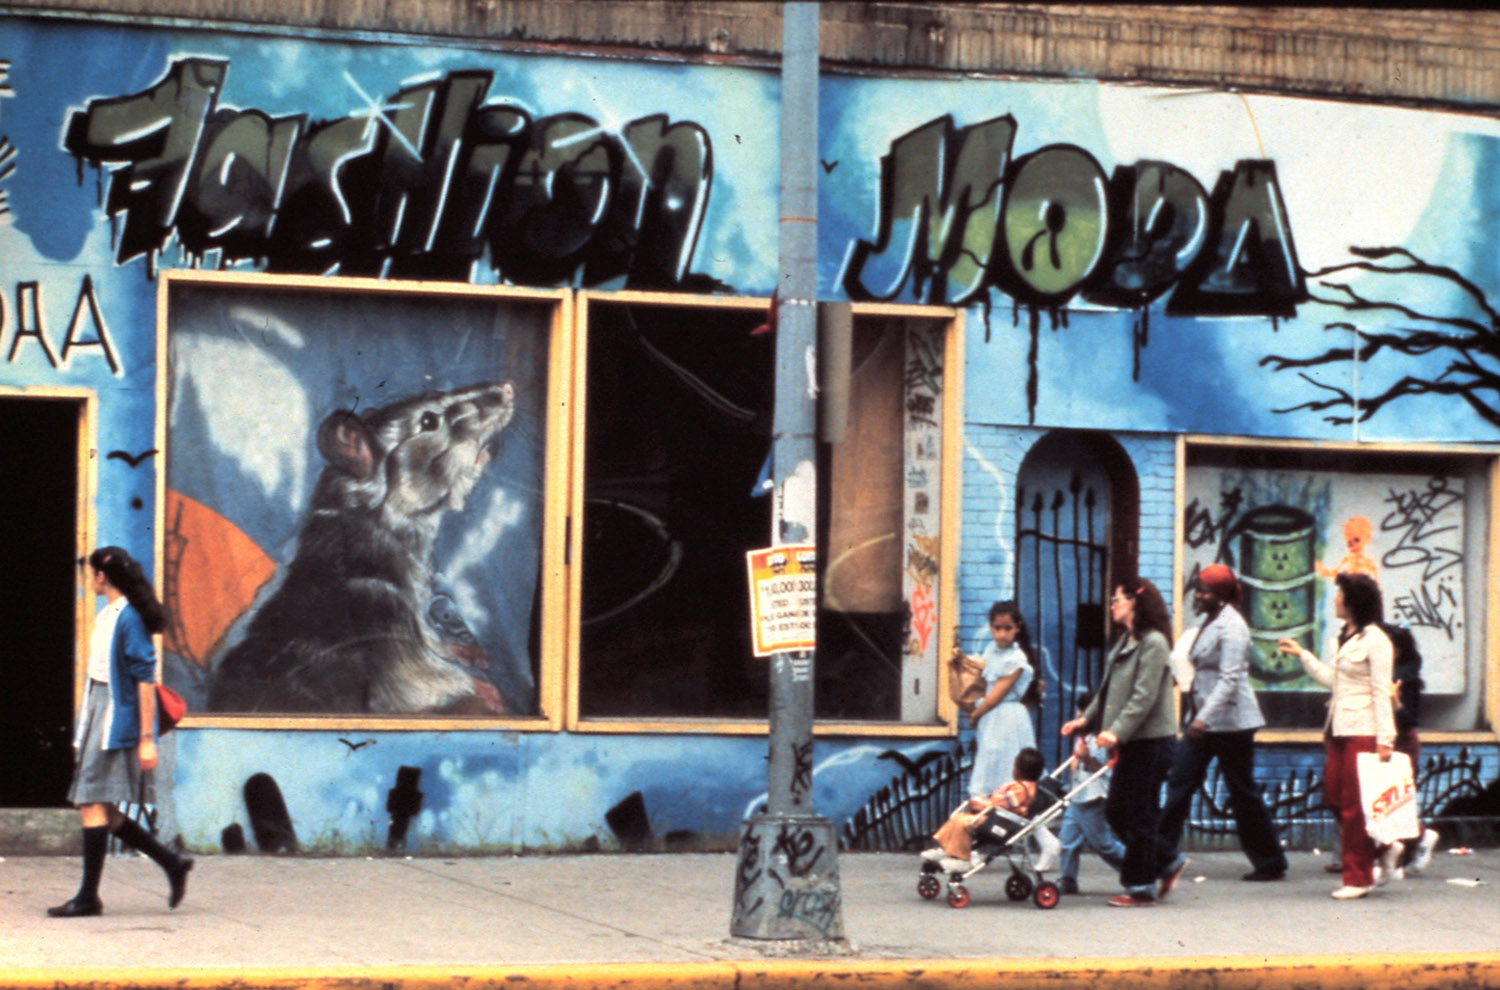 Exterior of Fashion/Moda with mural by Crash, 1982. Photo by Lisa Kahane